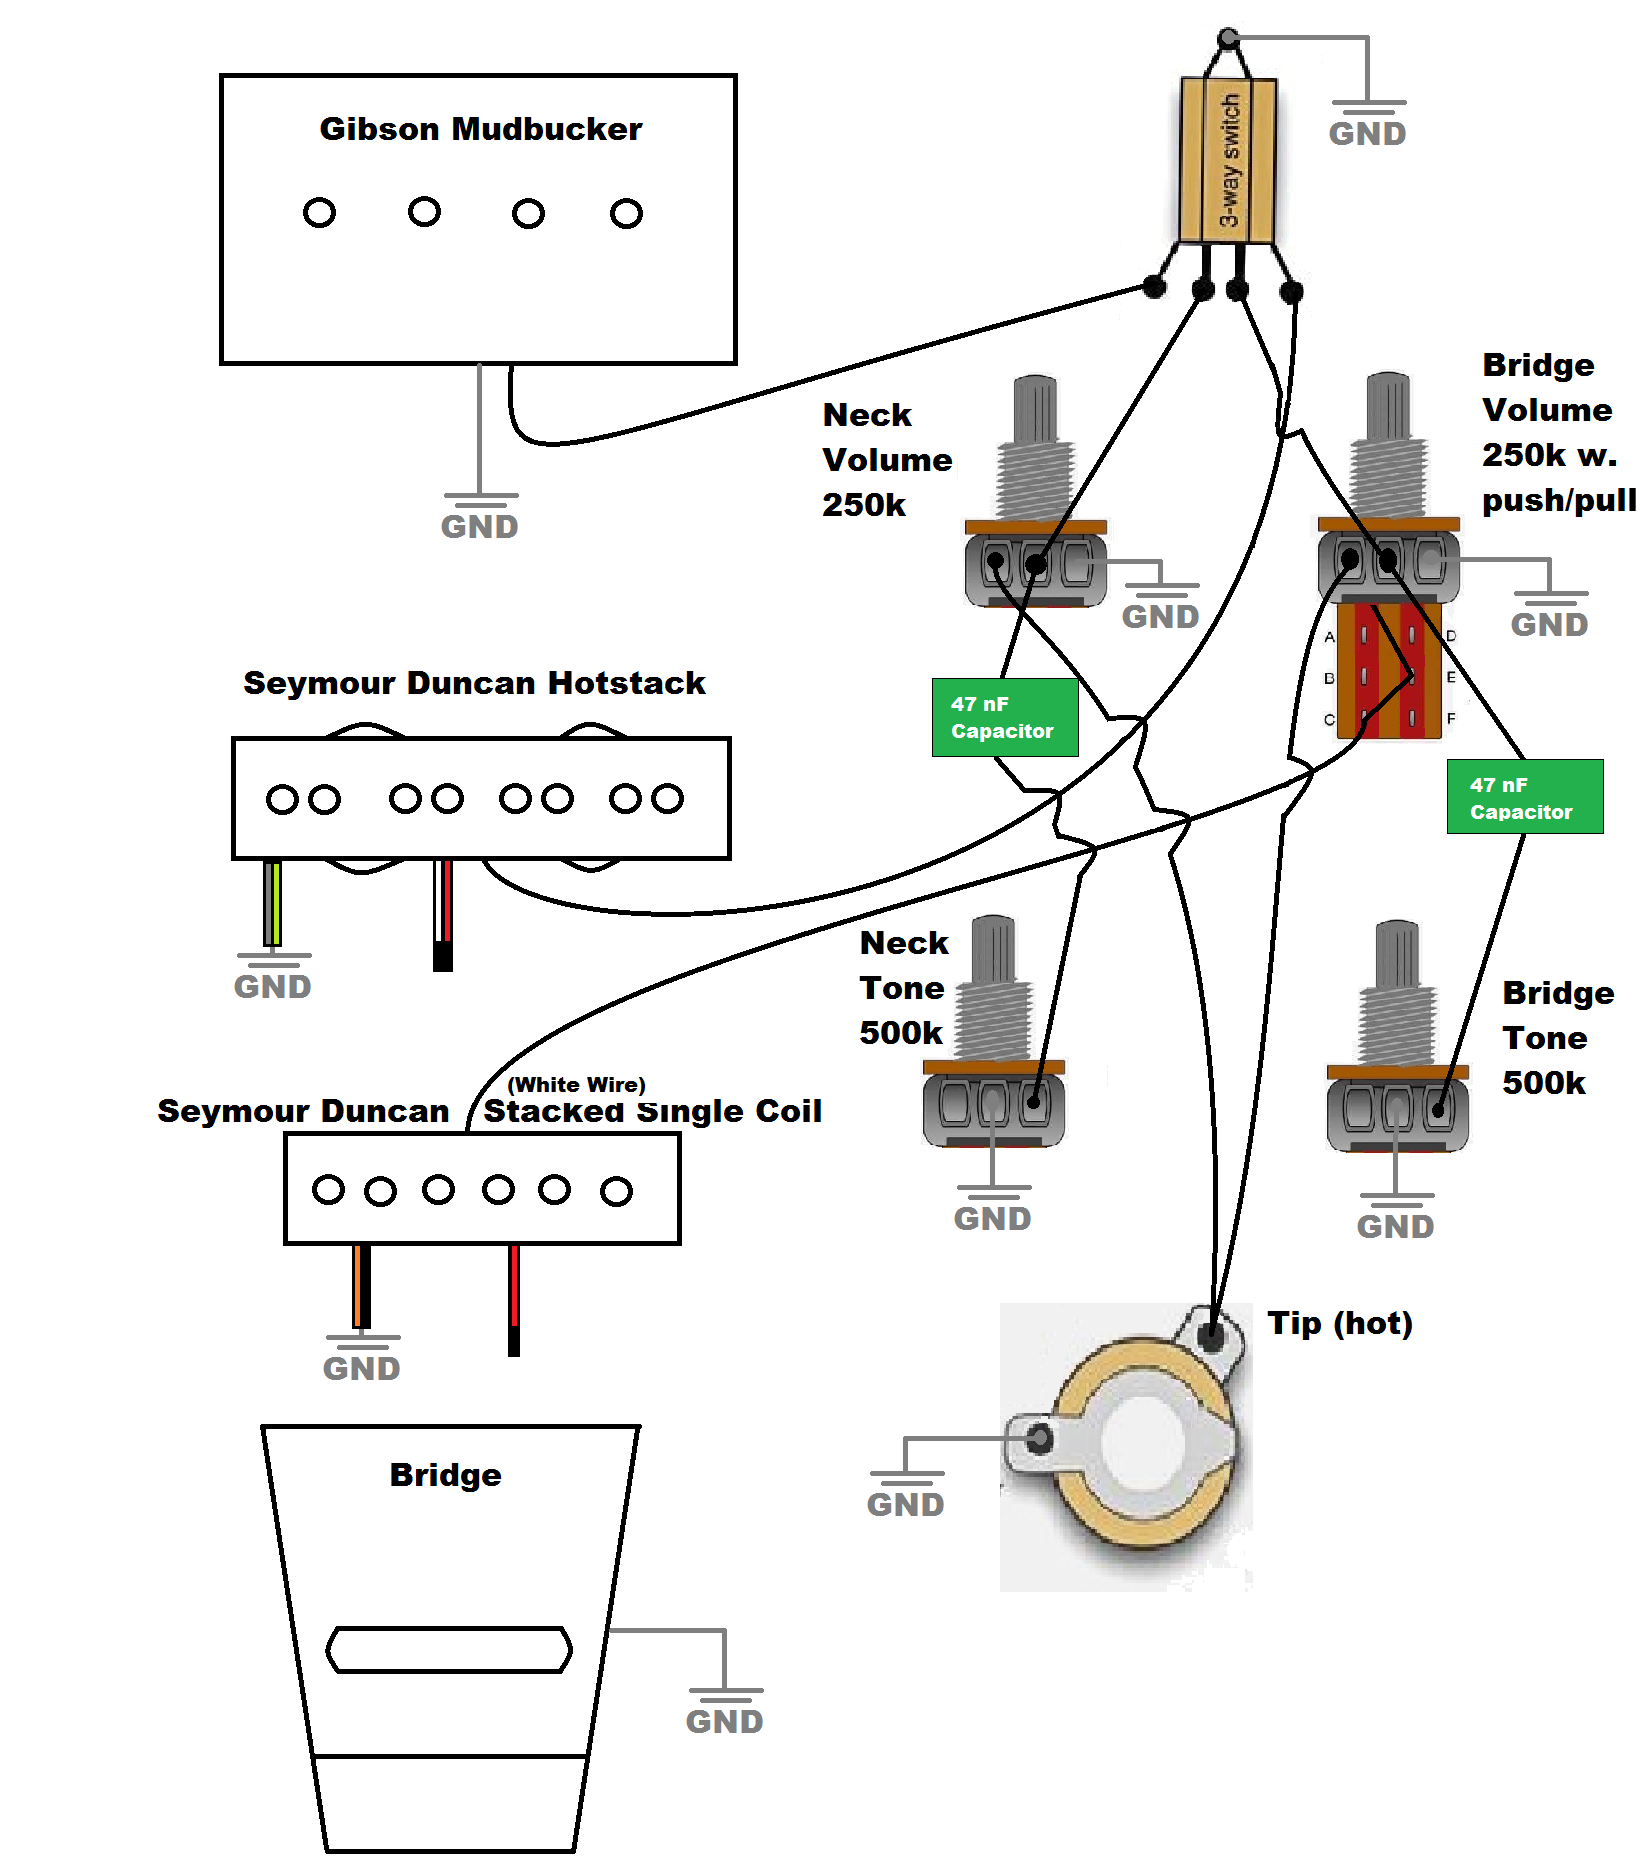 2003 Chevy Pick Up Wiring Diagram